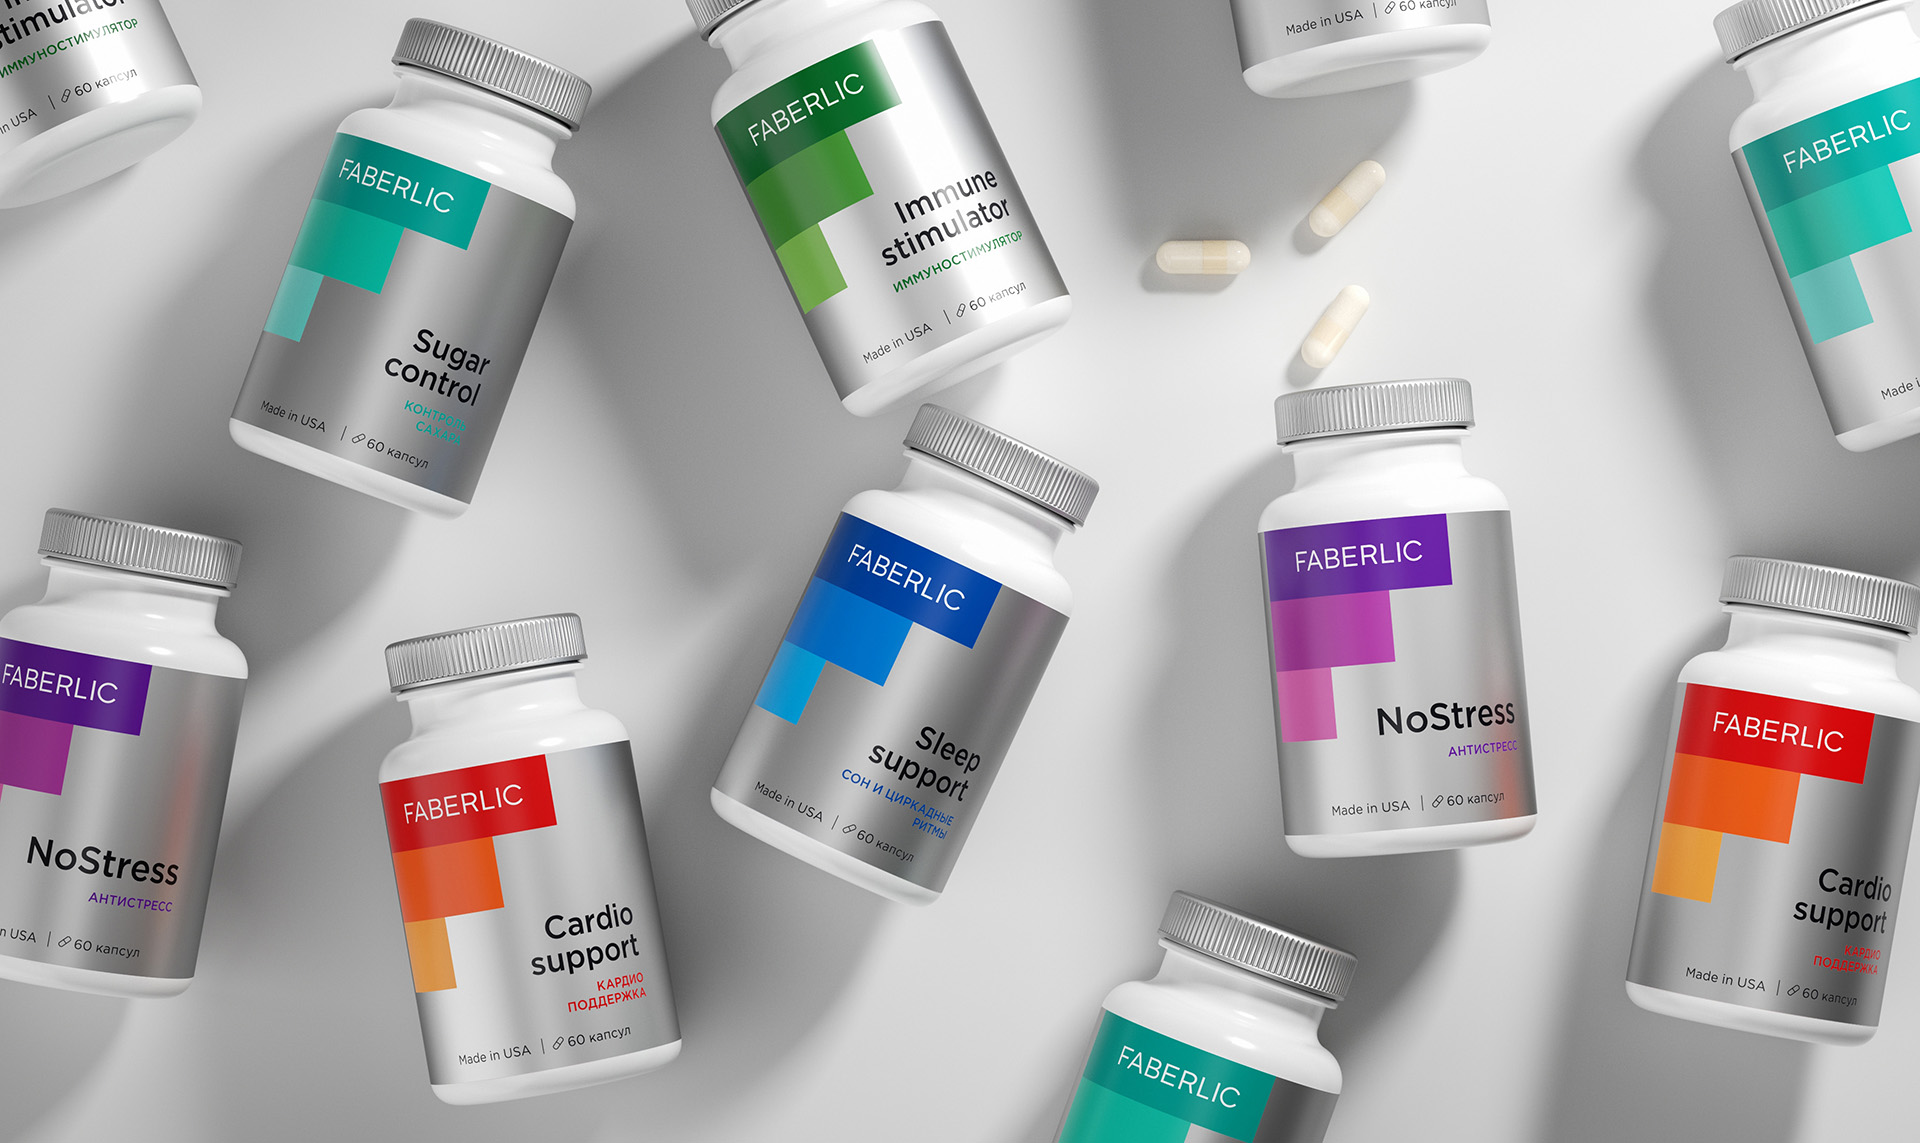 Faberlic Supplements Packaging Concept